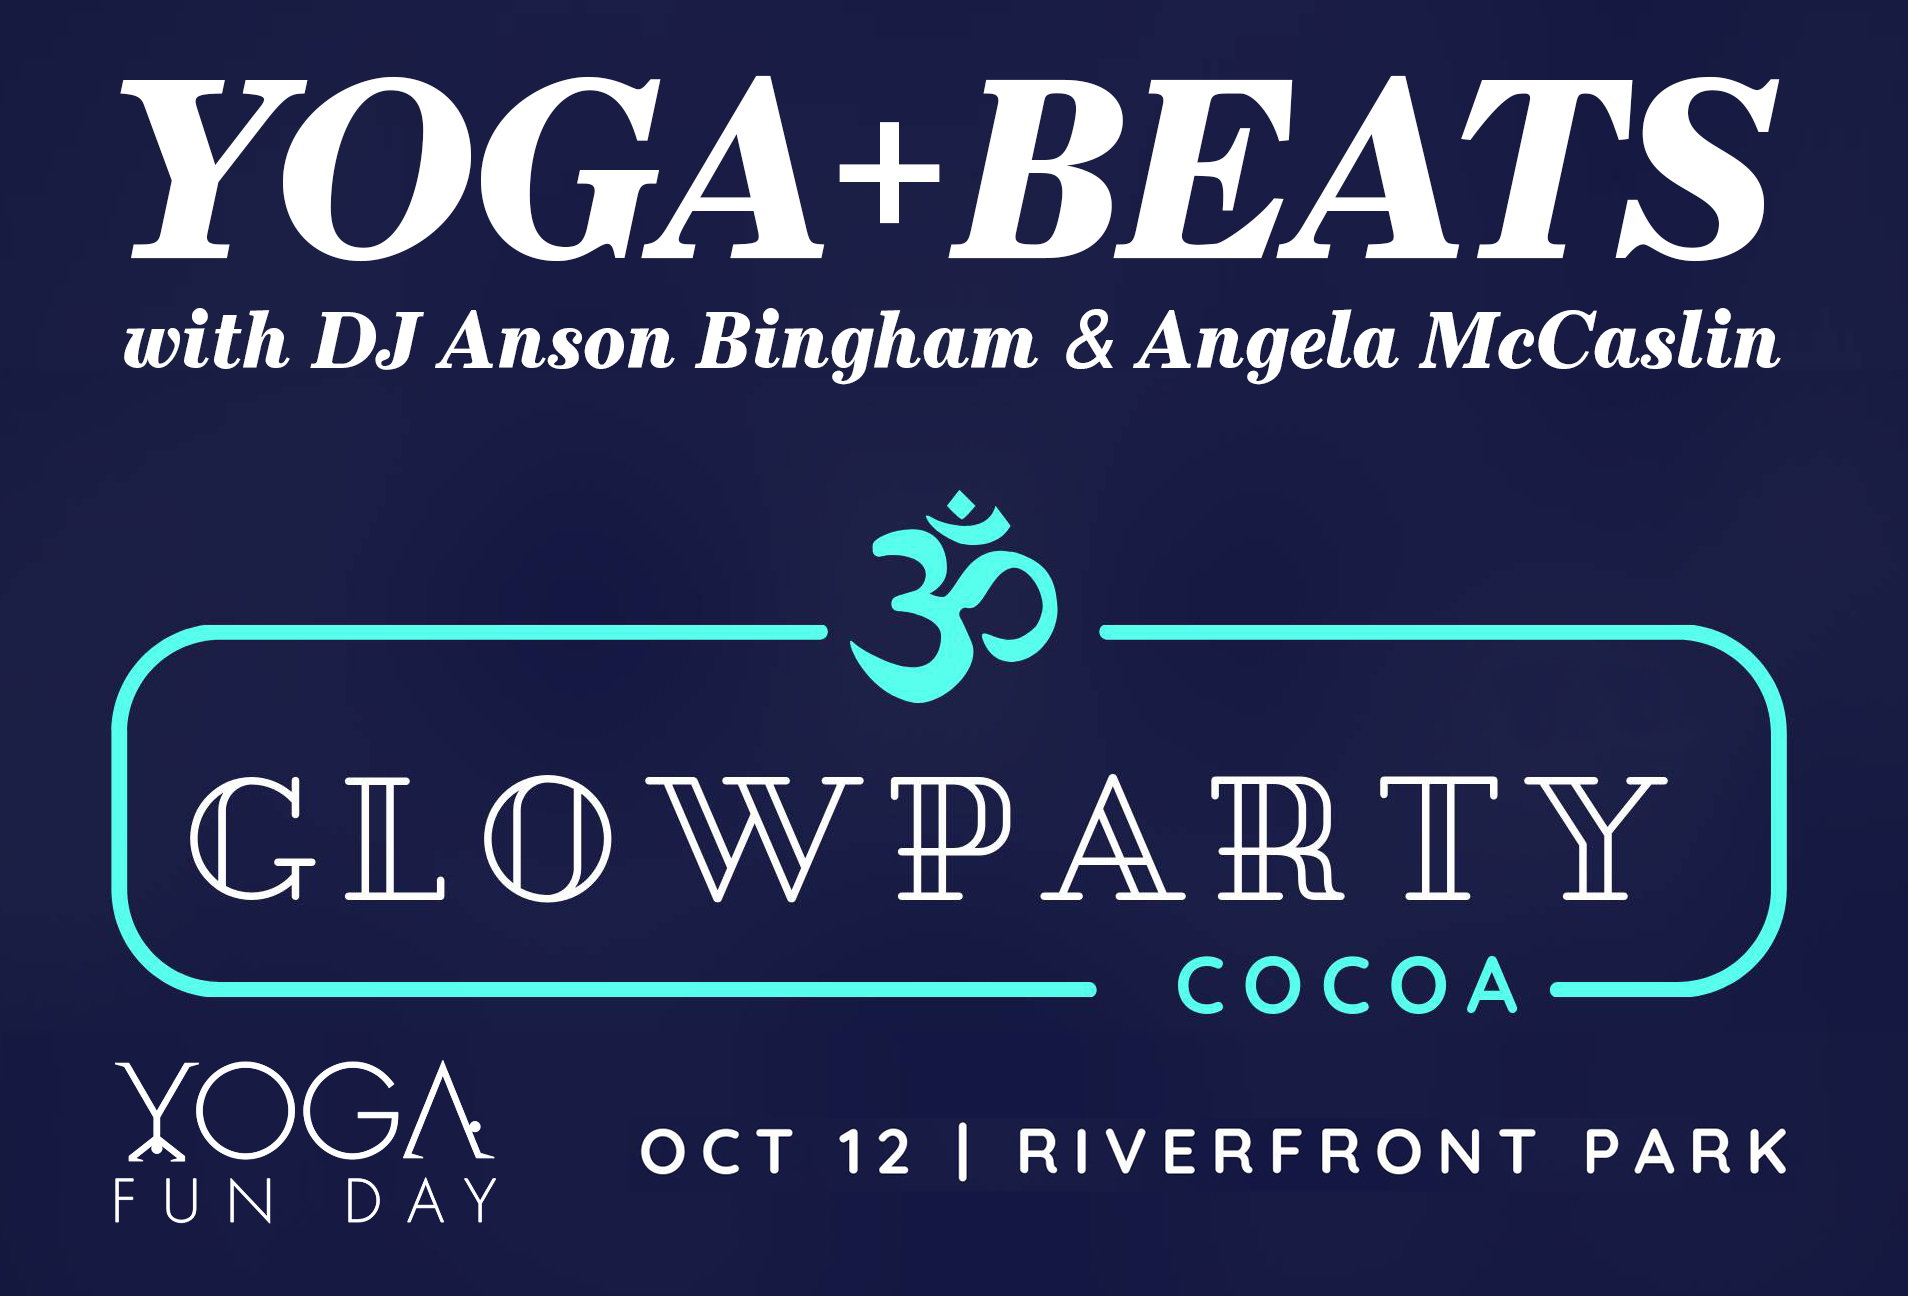 Yoga + Beats with Angela McCaslin and DJ Anson Bingham at Yoga Fun Day Yoga Festival Glow Party. Yoga Party.jpg